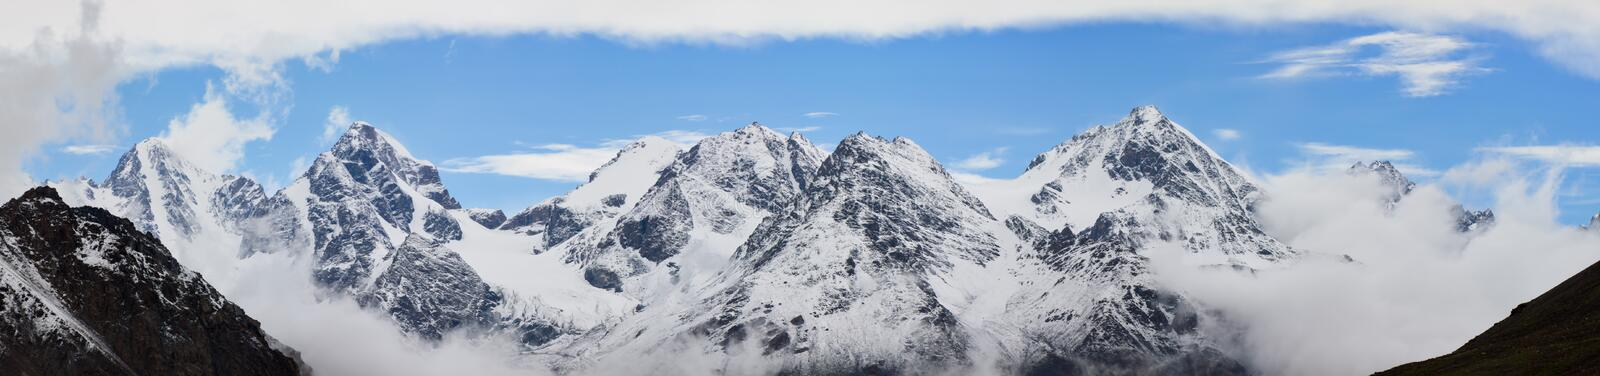 Mountain in the Clouds royalty free stock photos